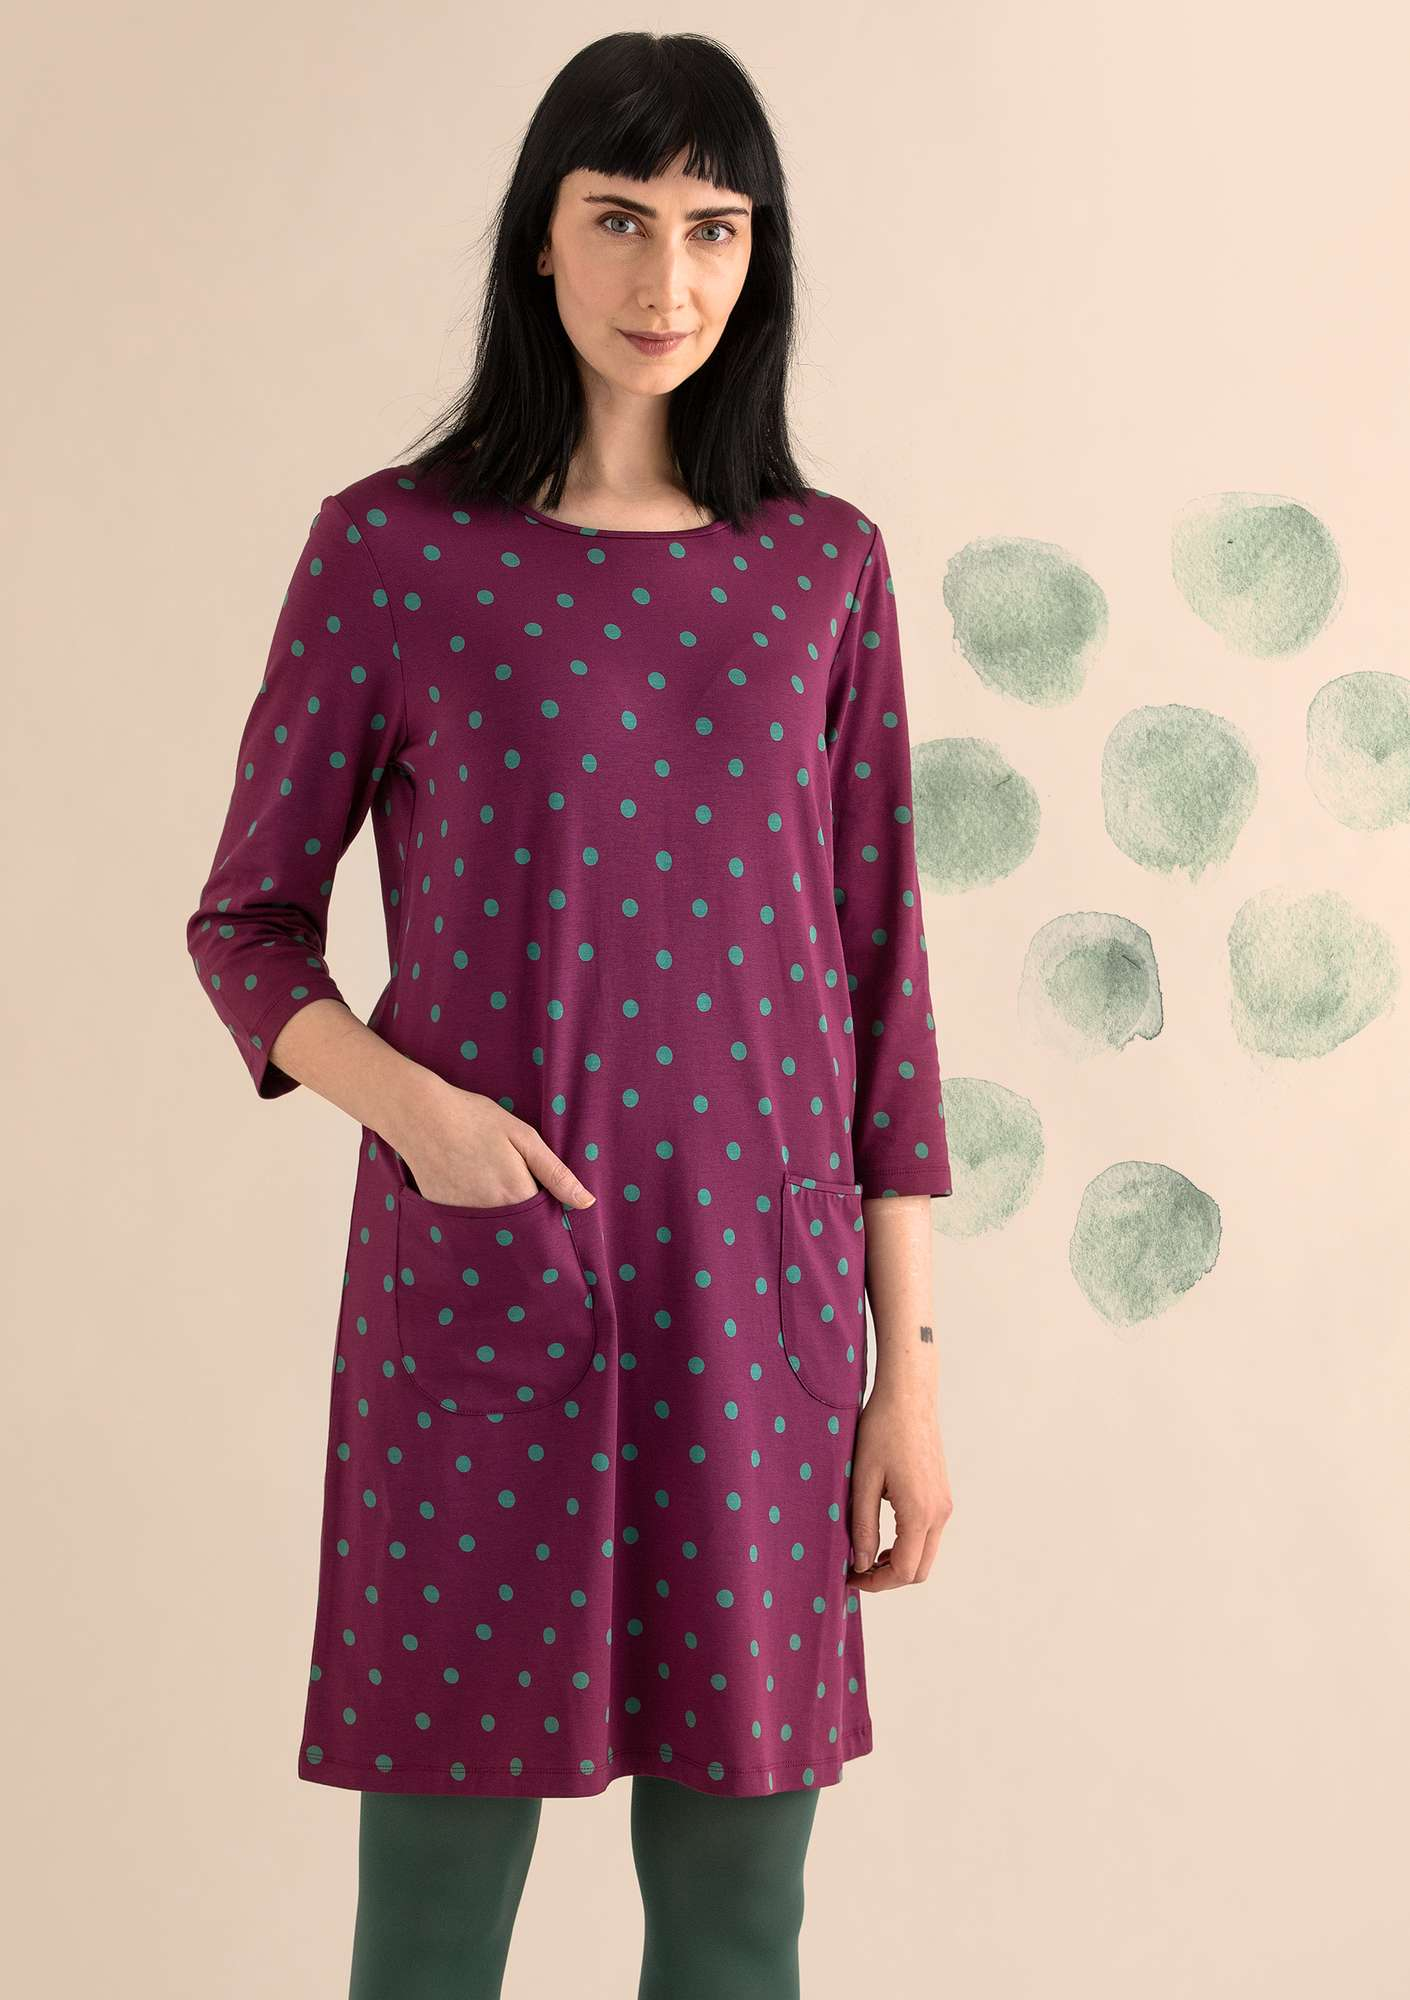 DOT dress in modal/organic cotton/elastane grape/patterned